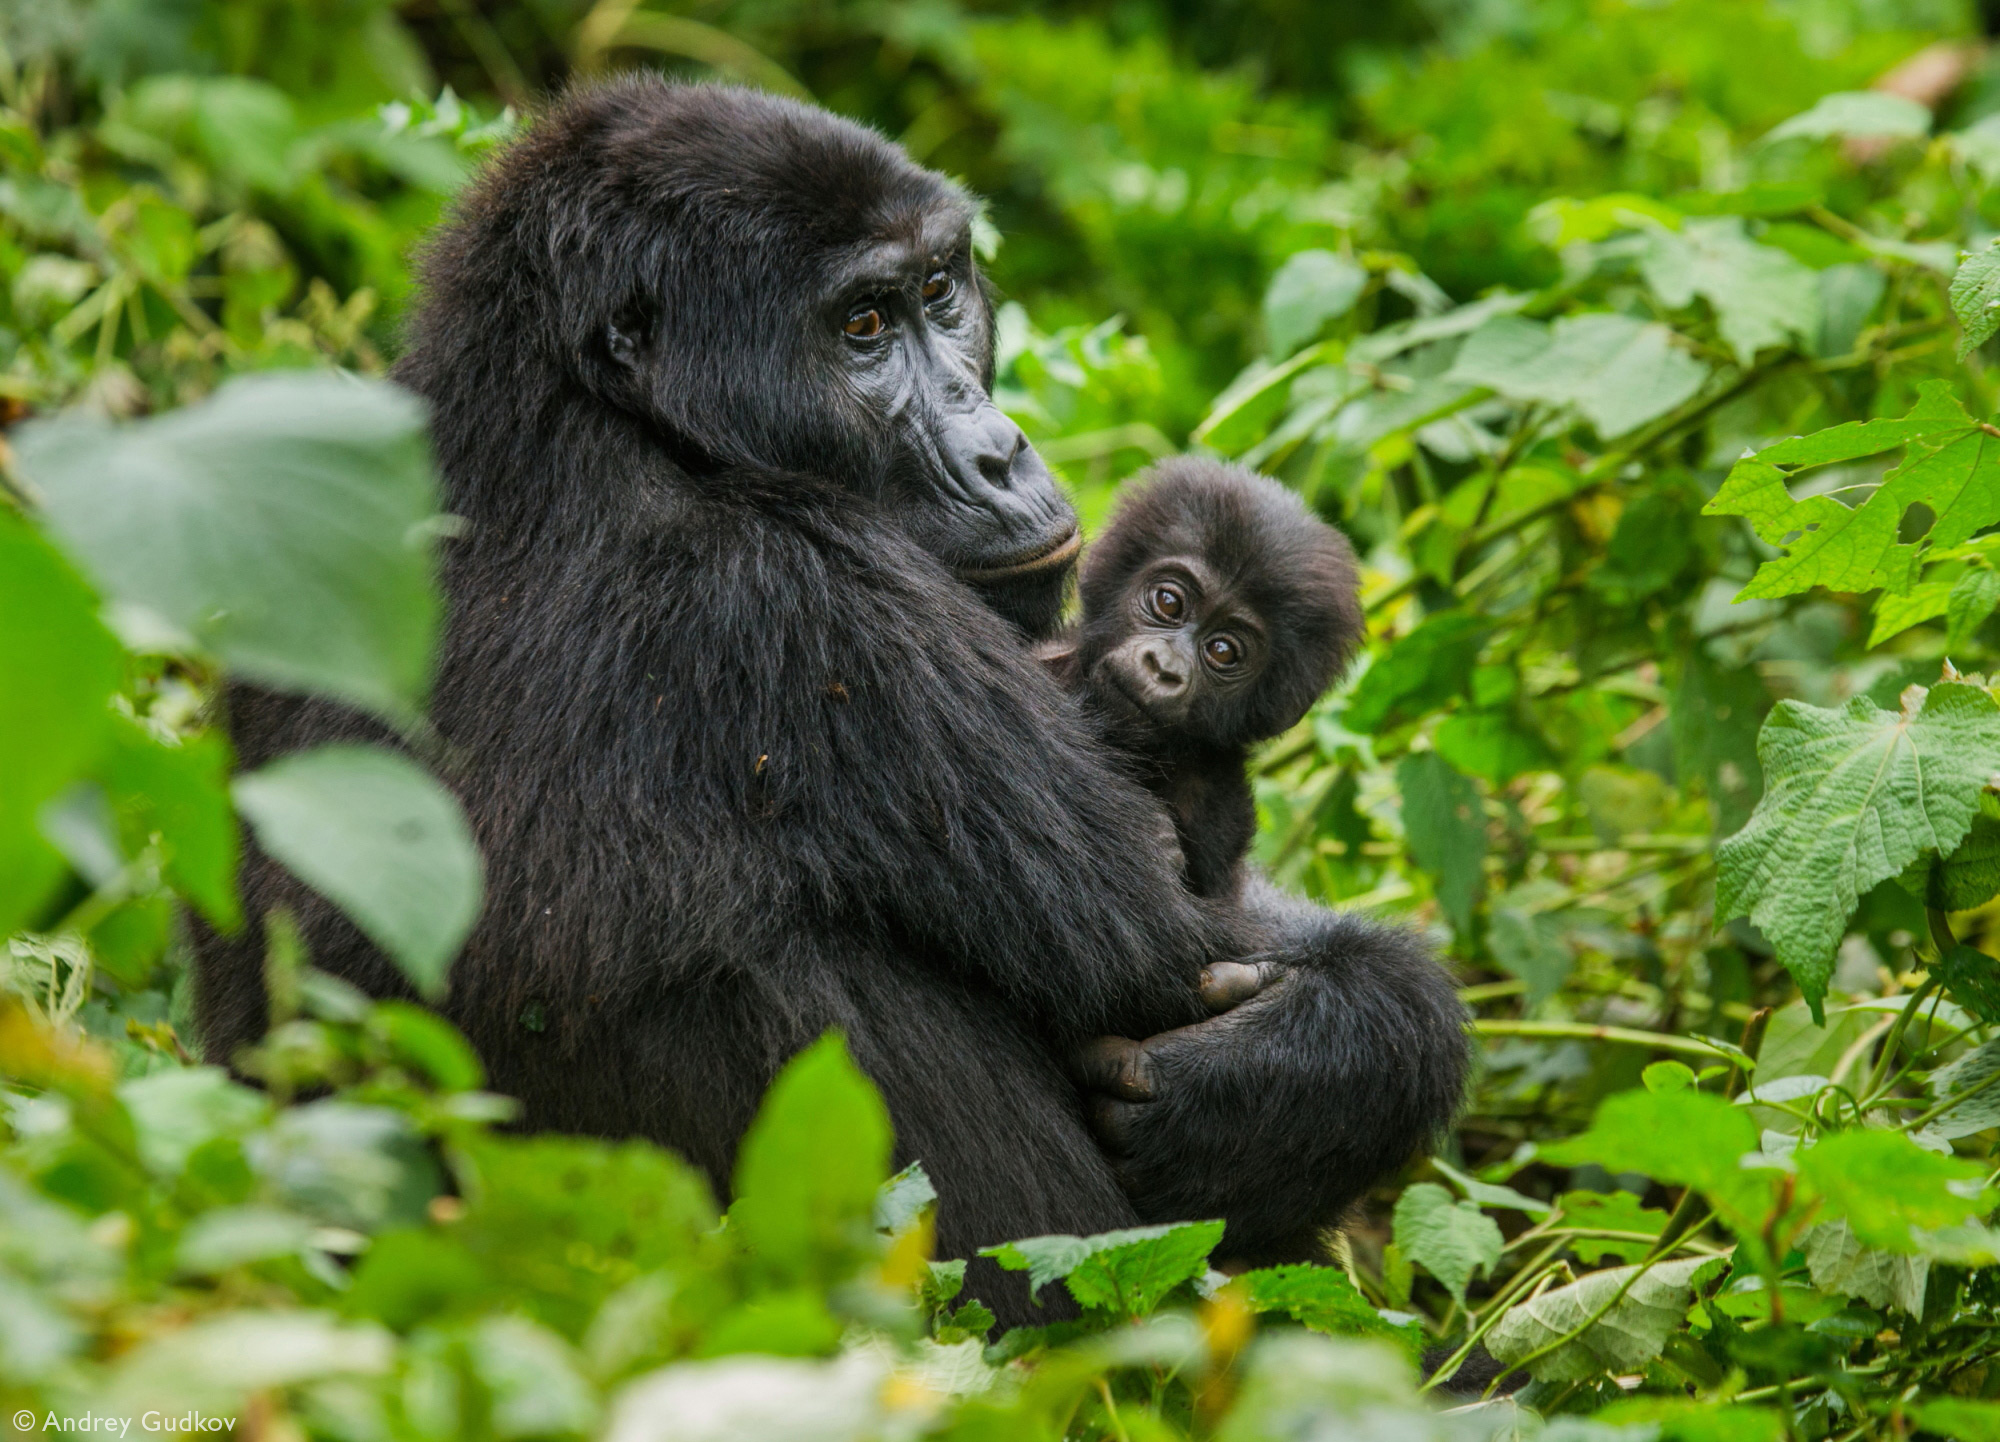 A mother mountain gorilla with her baby in Bwindi Impenetrable National Park, Uganda © Andrey Gudkov